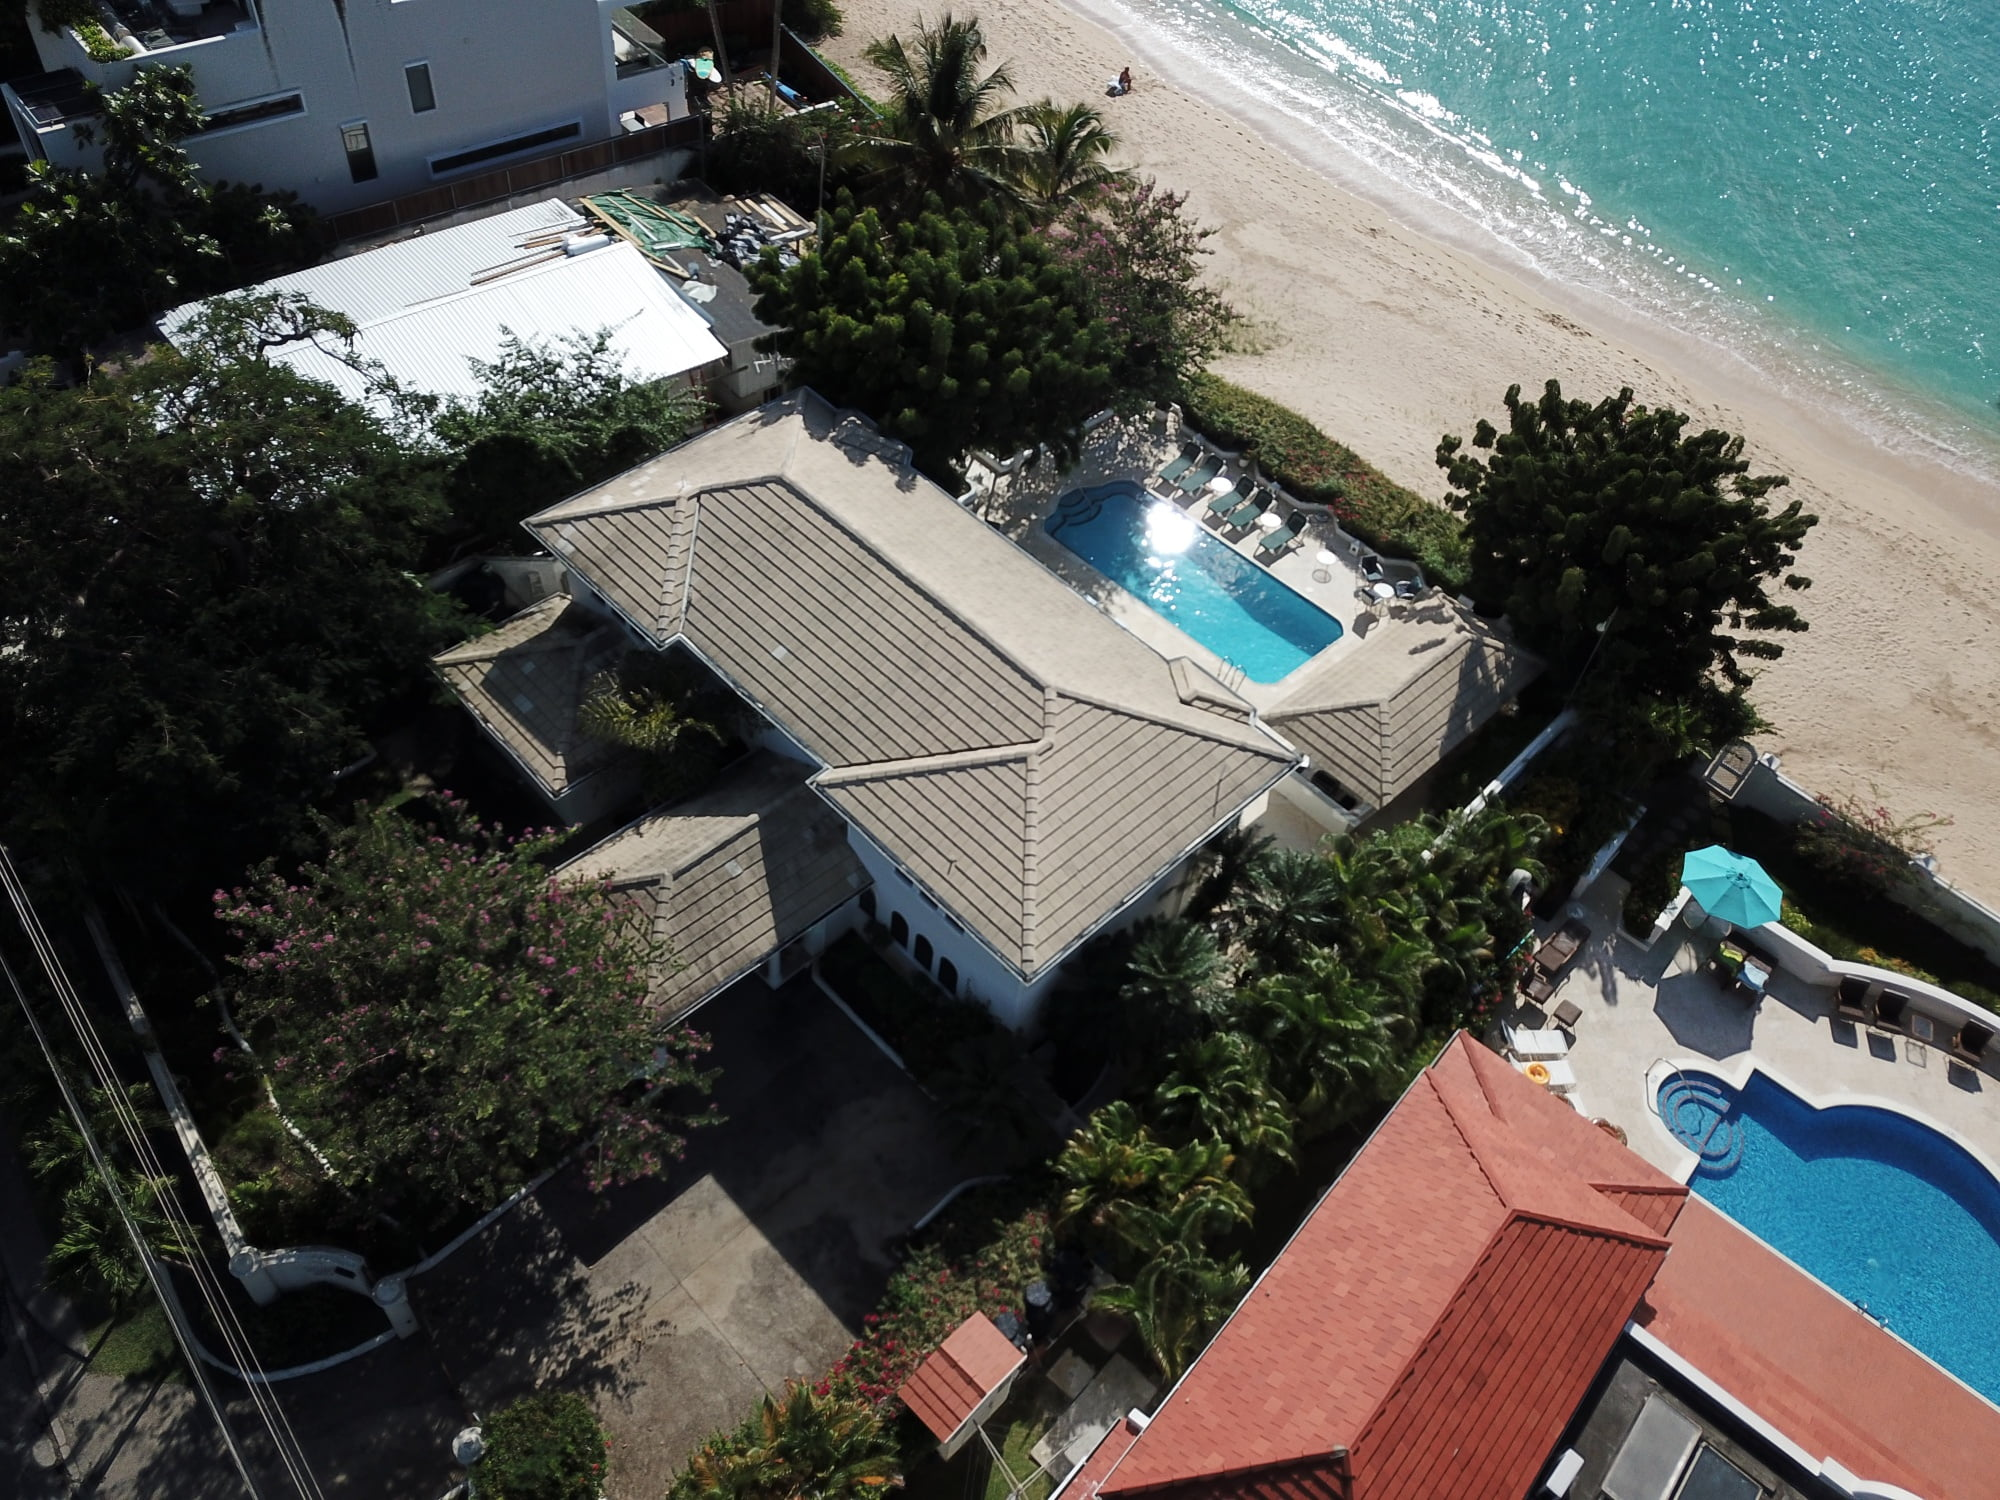 Oyster Bay, Lower Carlton, St. James (US$ 1,700 nightly Winter Rate 2019)